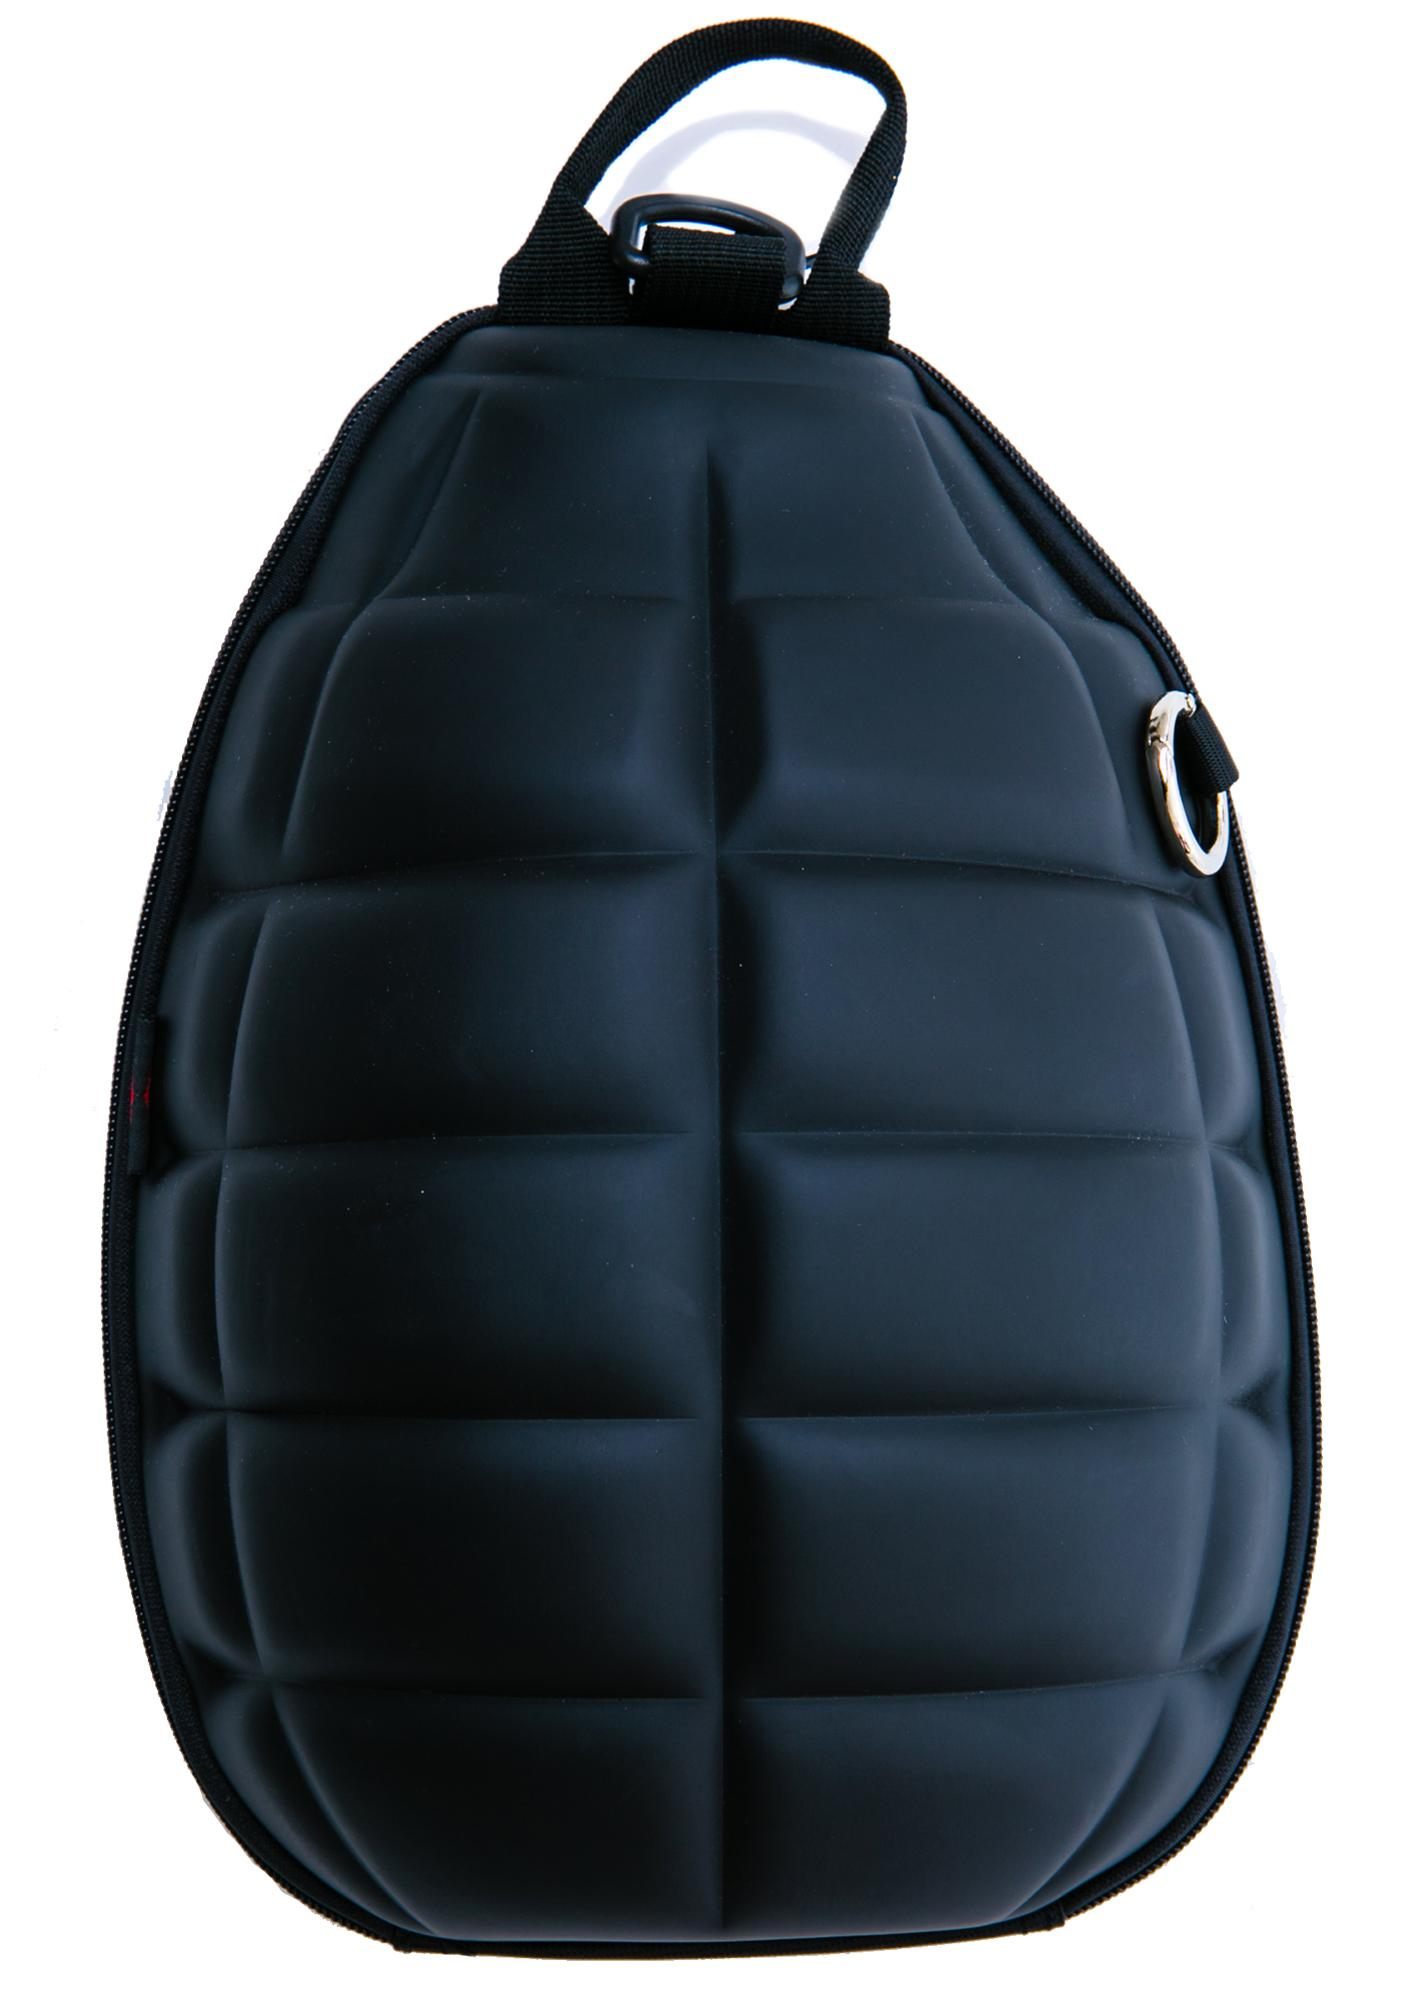 Bombs Away Backpack